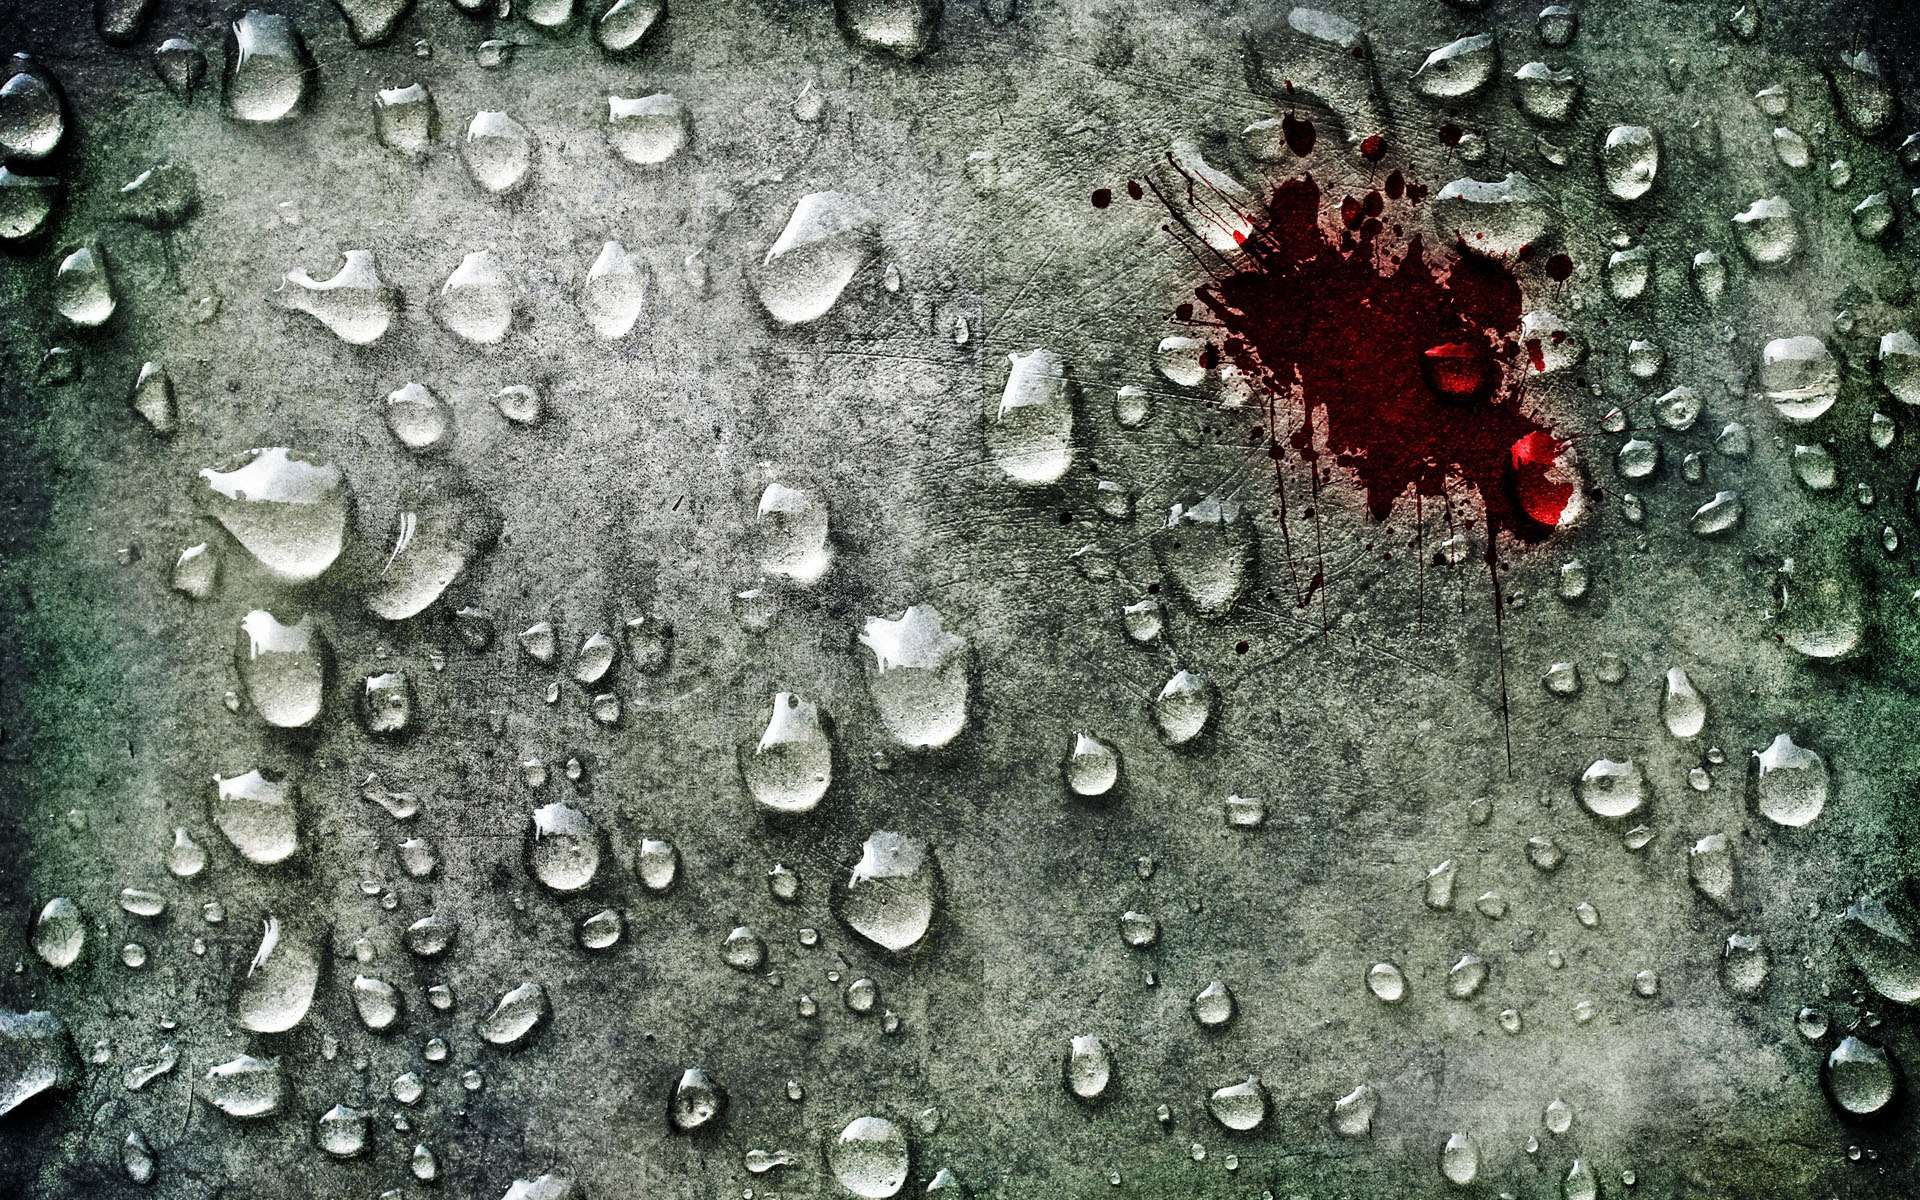 blood drop on surface hd wallpaper | hd latest wallpapers